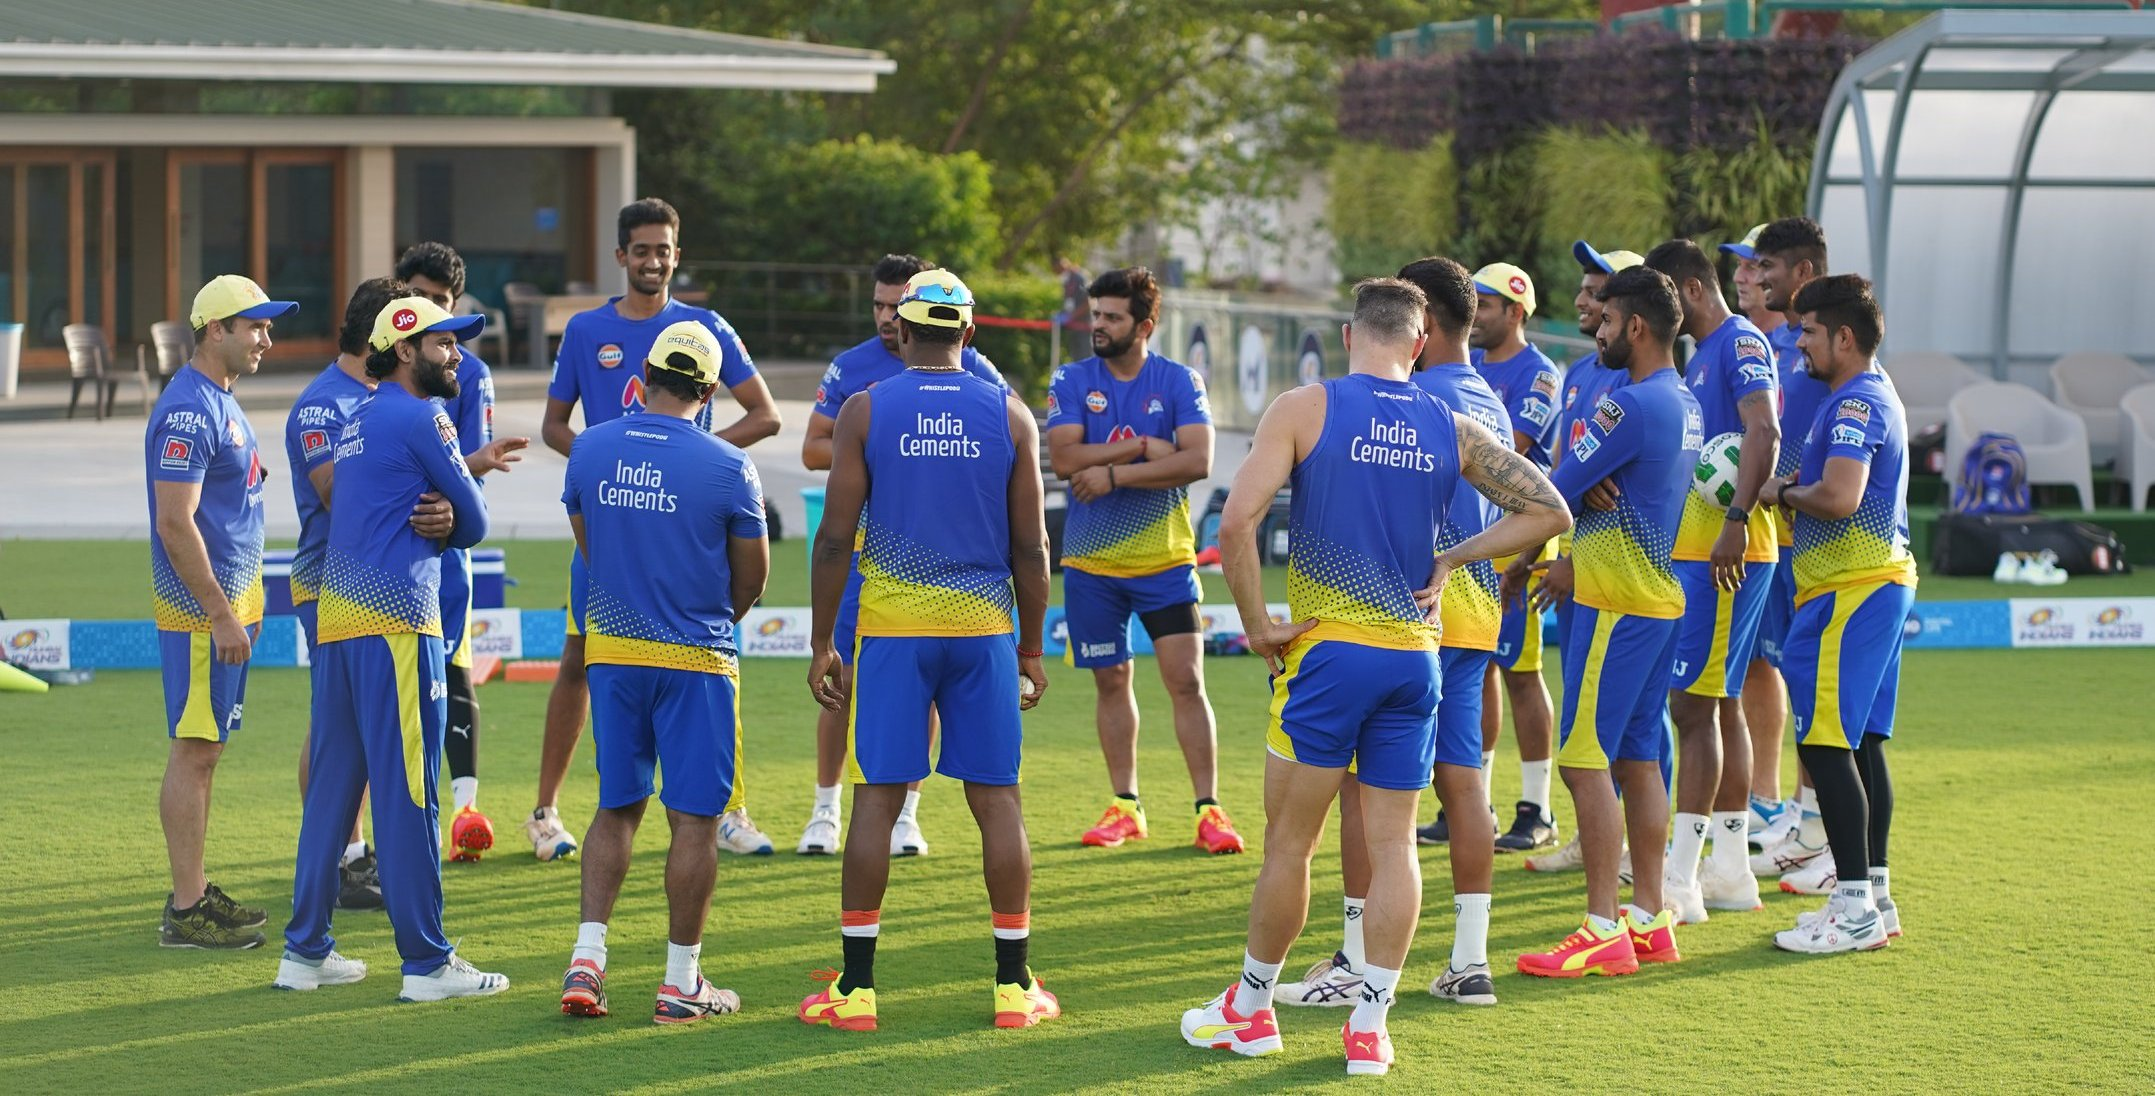 CSK players in training ahead of IPL 2021 | @ChennaiIPL/Twitter